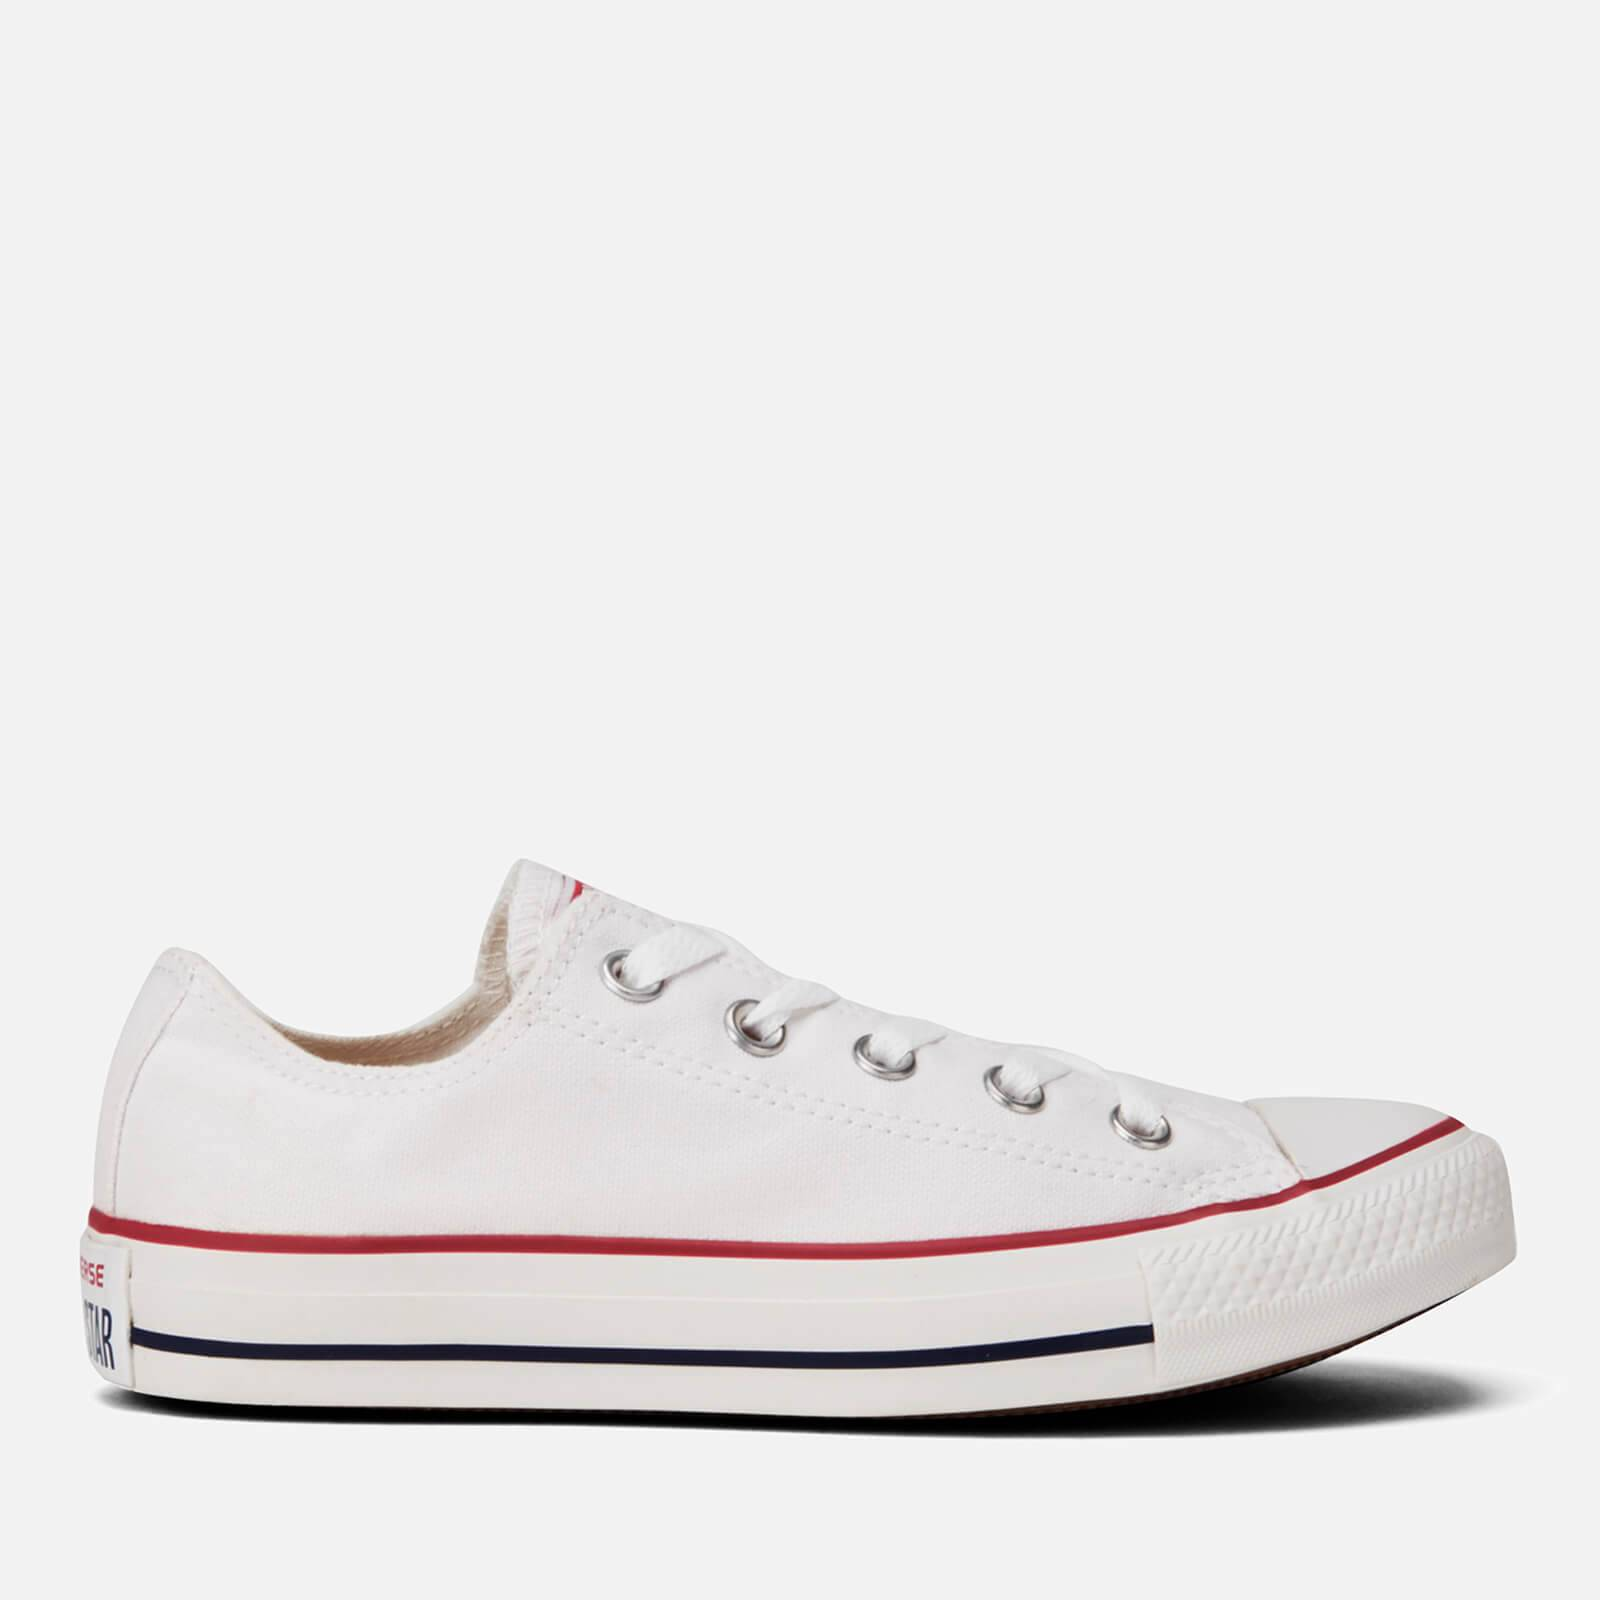 Converse Chuck Taylor All Star Ox Trainers - Optical White - UK 11